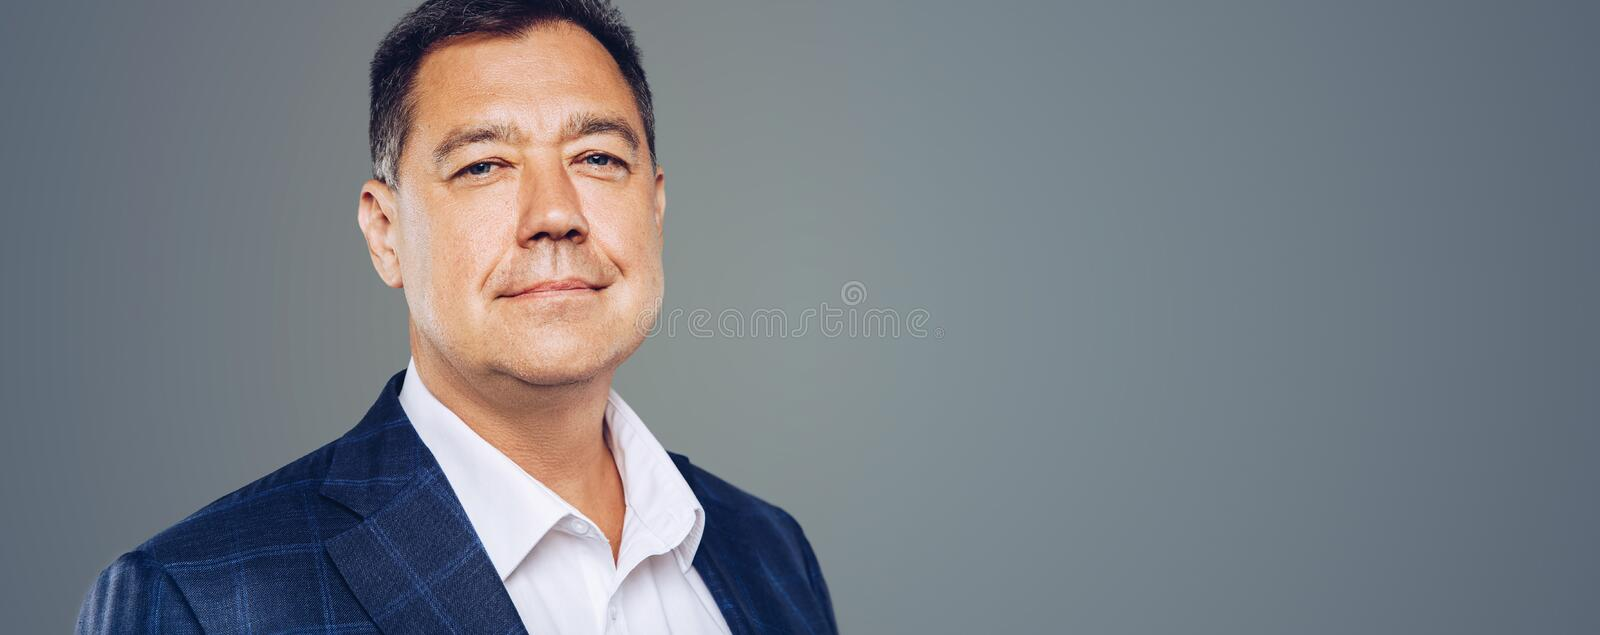 Leadership.Attractive business man looks confident ,studio portrait. Mature and beautiful. Panoramic banner royalty free stock photography